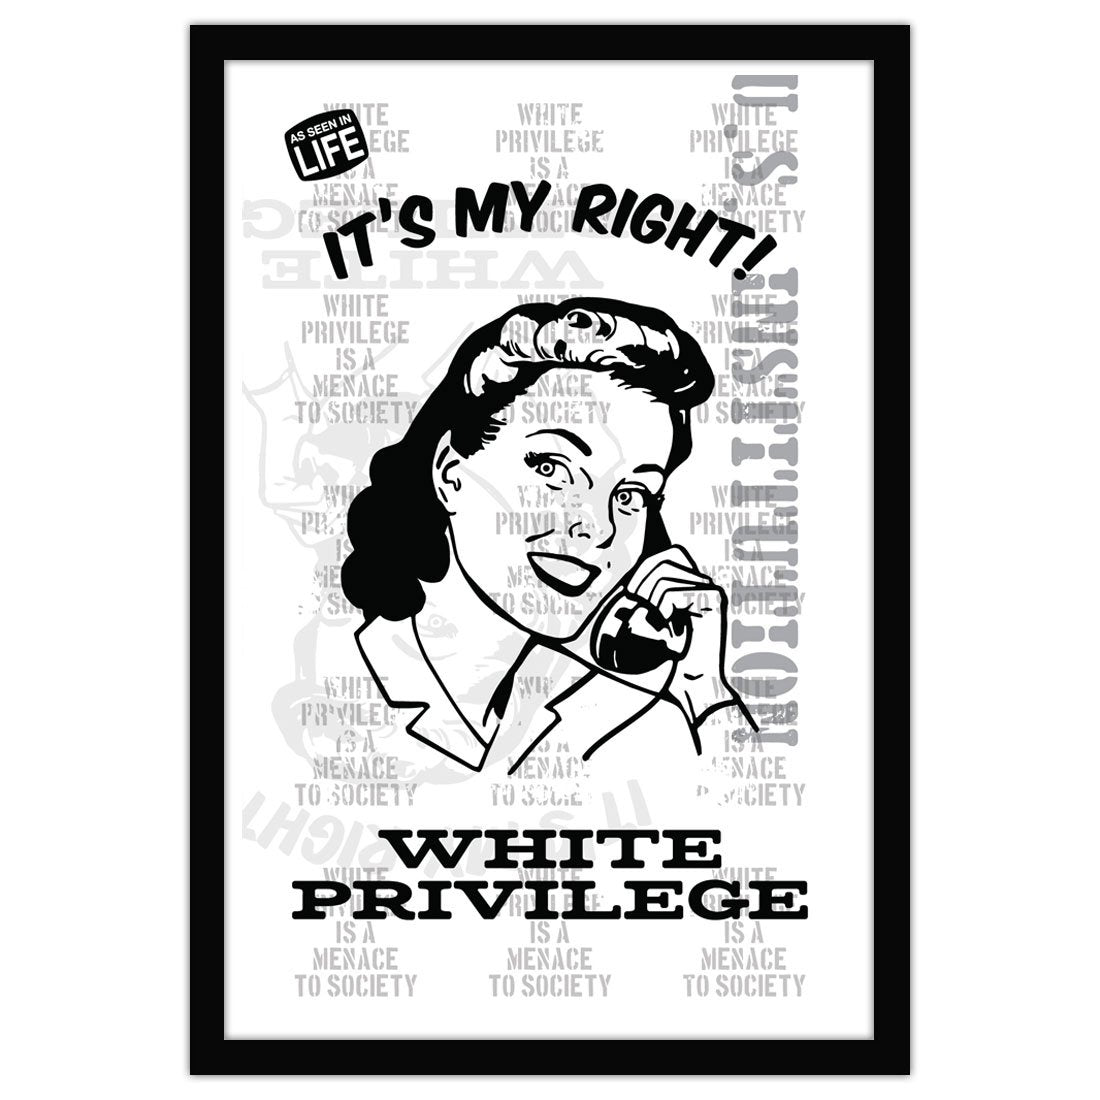 David Bernie Shop Fine Art Print Poster 11x17 18x24 36x48 White Privilege It's My Right